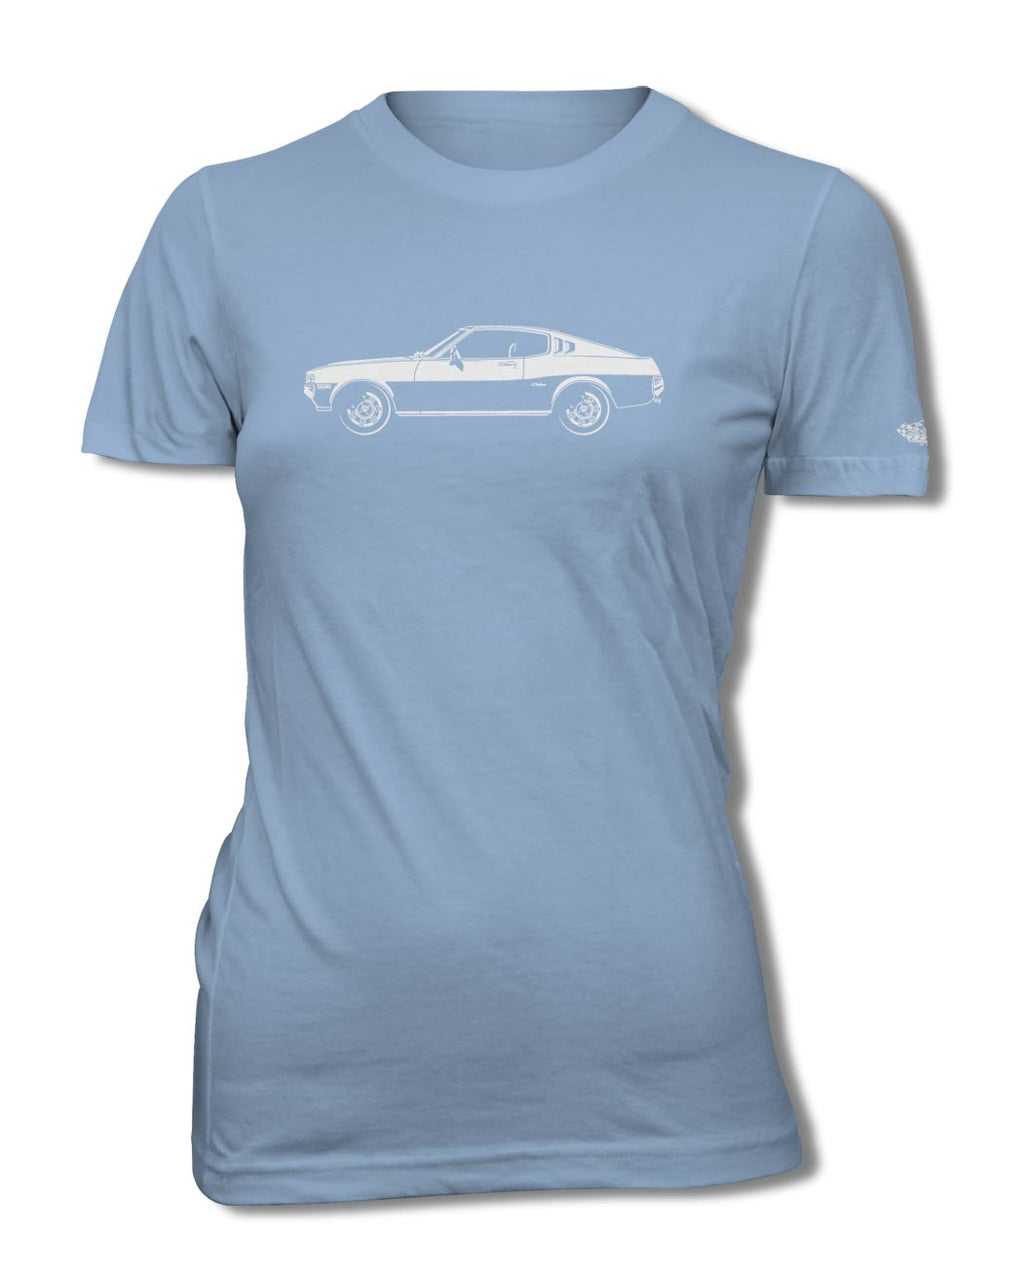 Toyota Celica Liftback 1973 – 1977 T-Shirt - Women - Side View